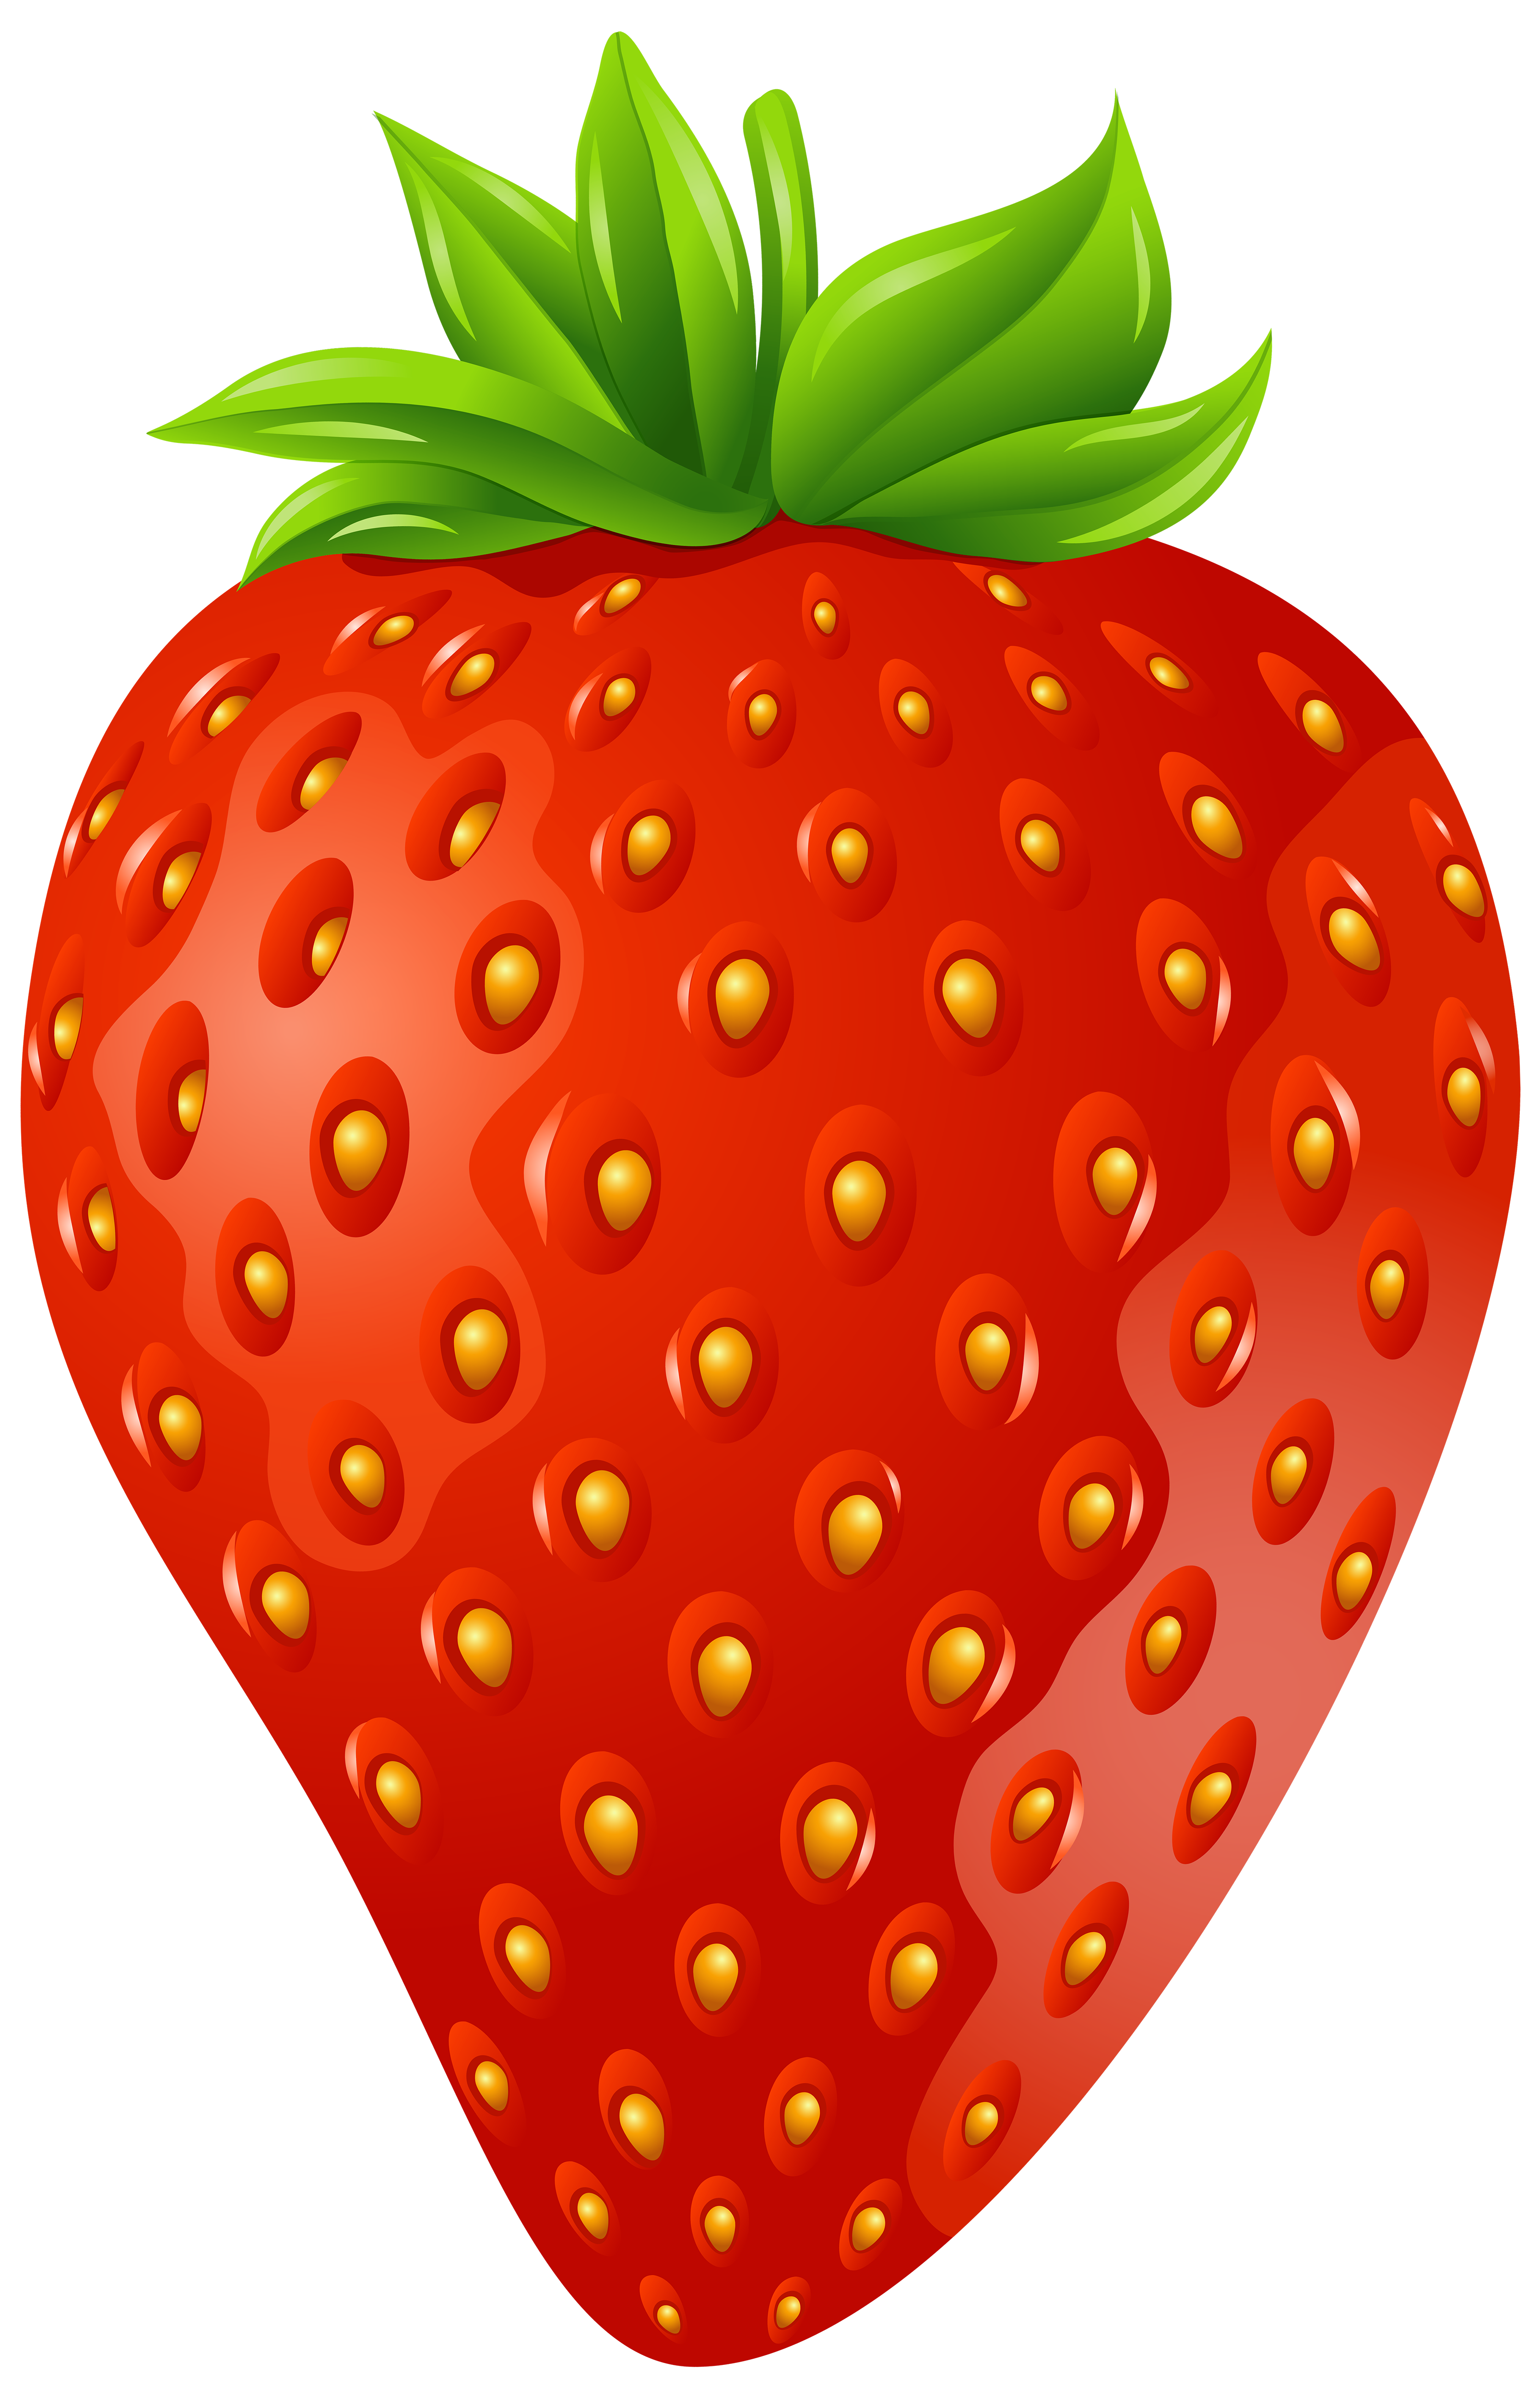 Strawberries clipart orange. Strawberry png clip art